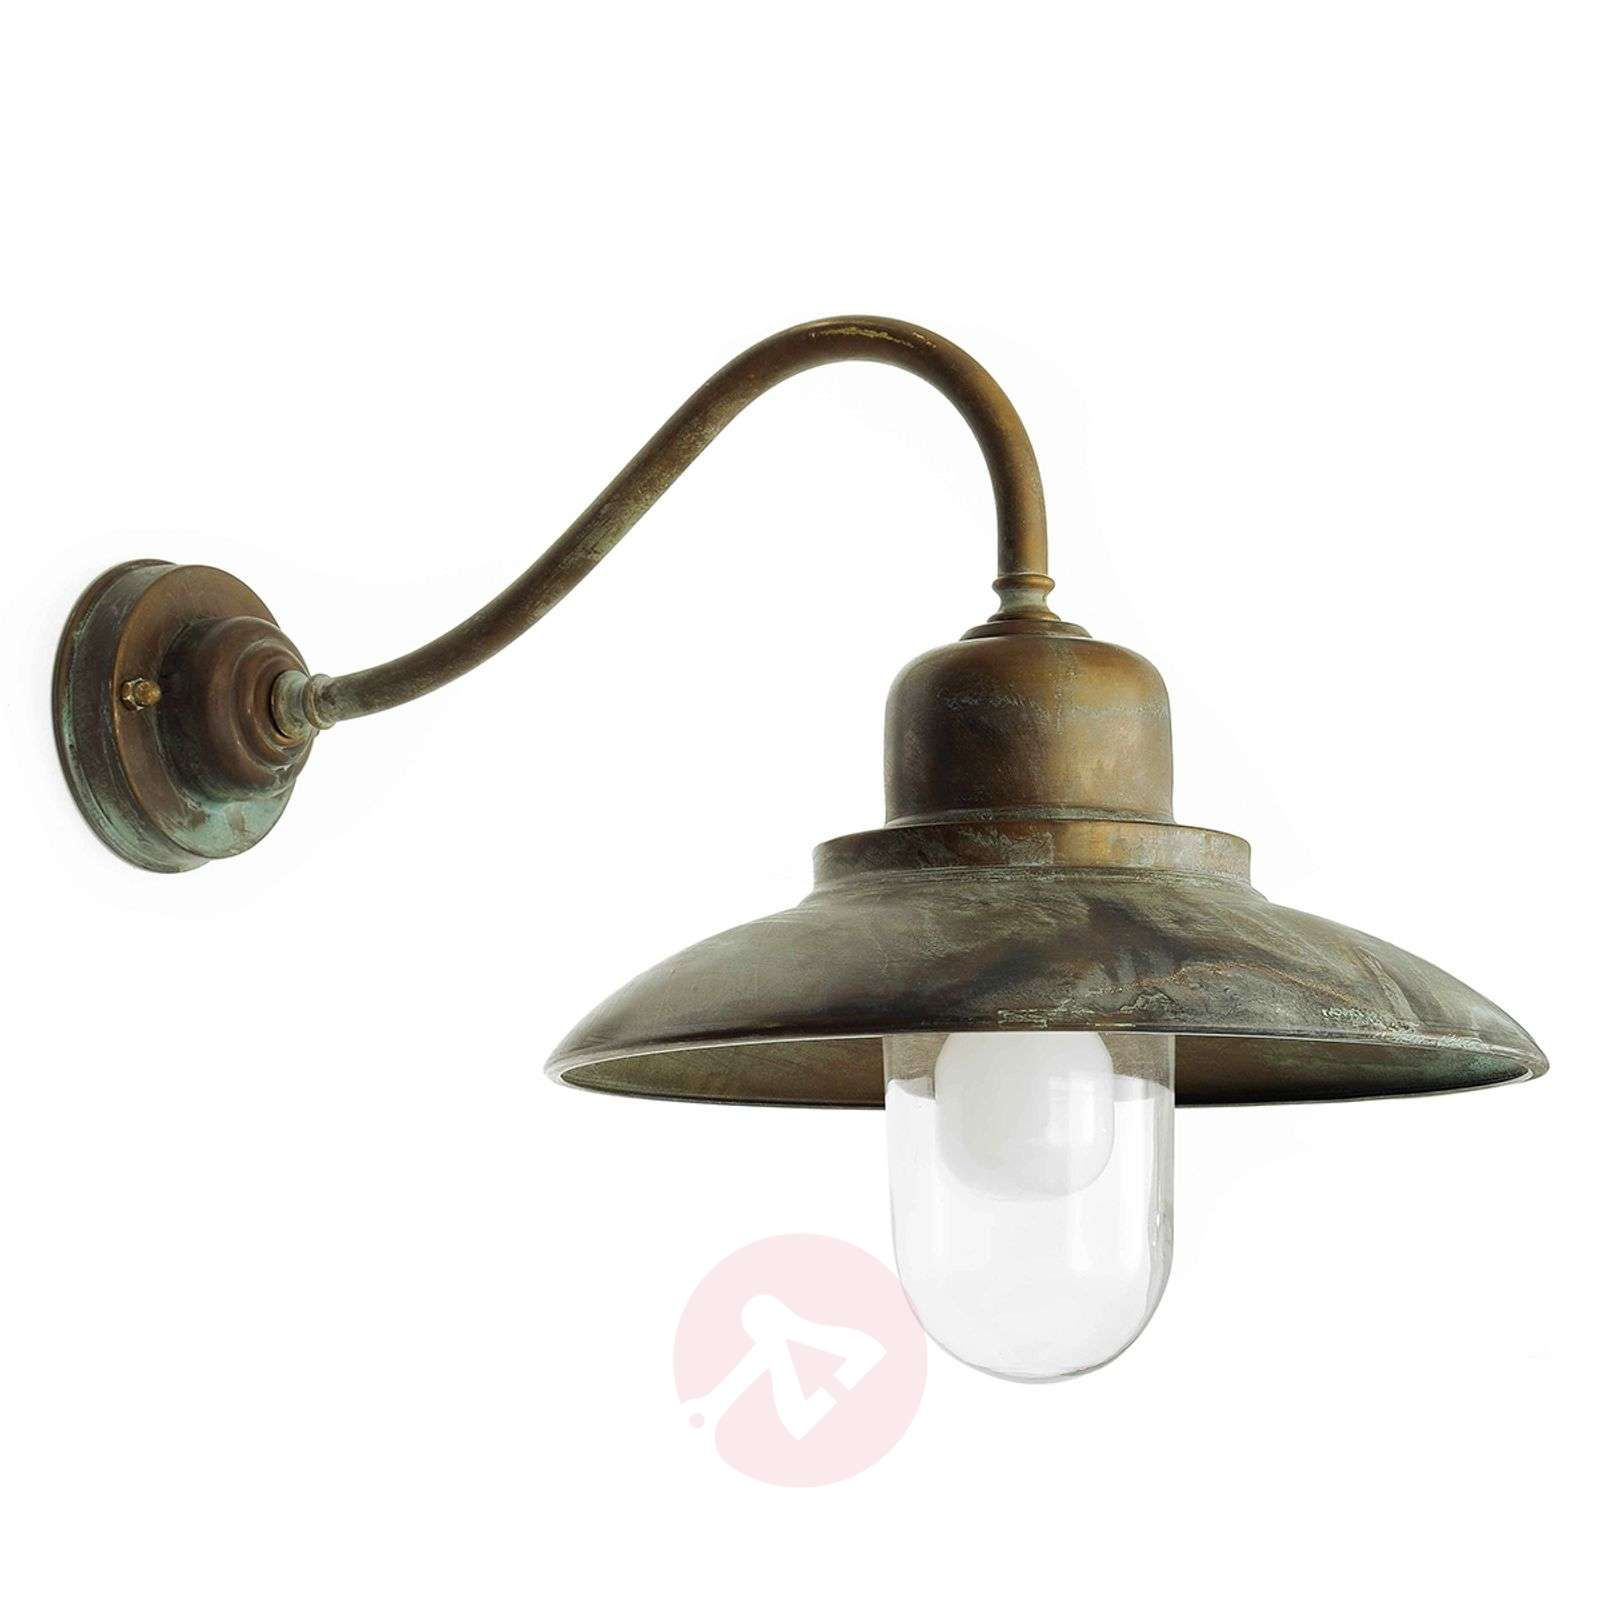 Durable outdoor wall lamp Turino-6515358-01